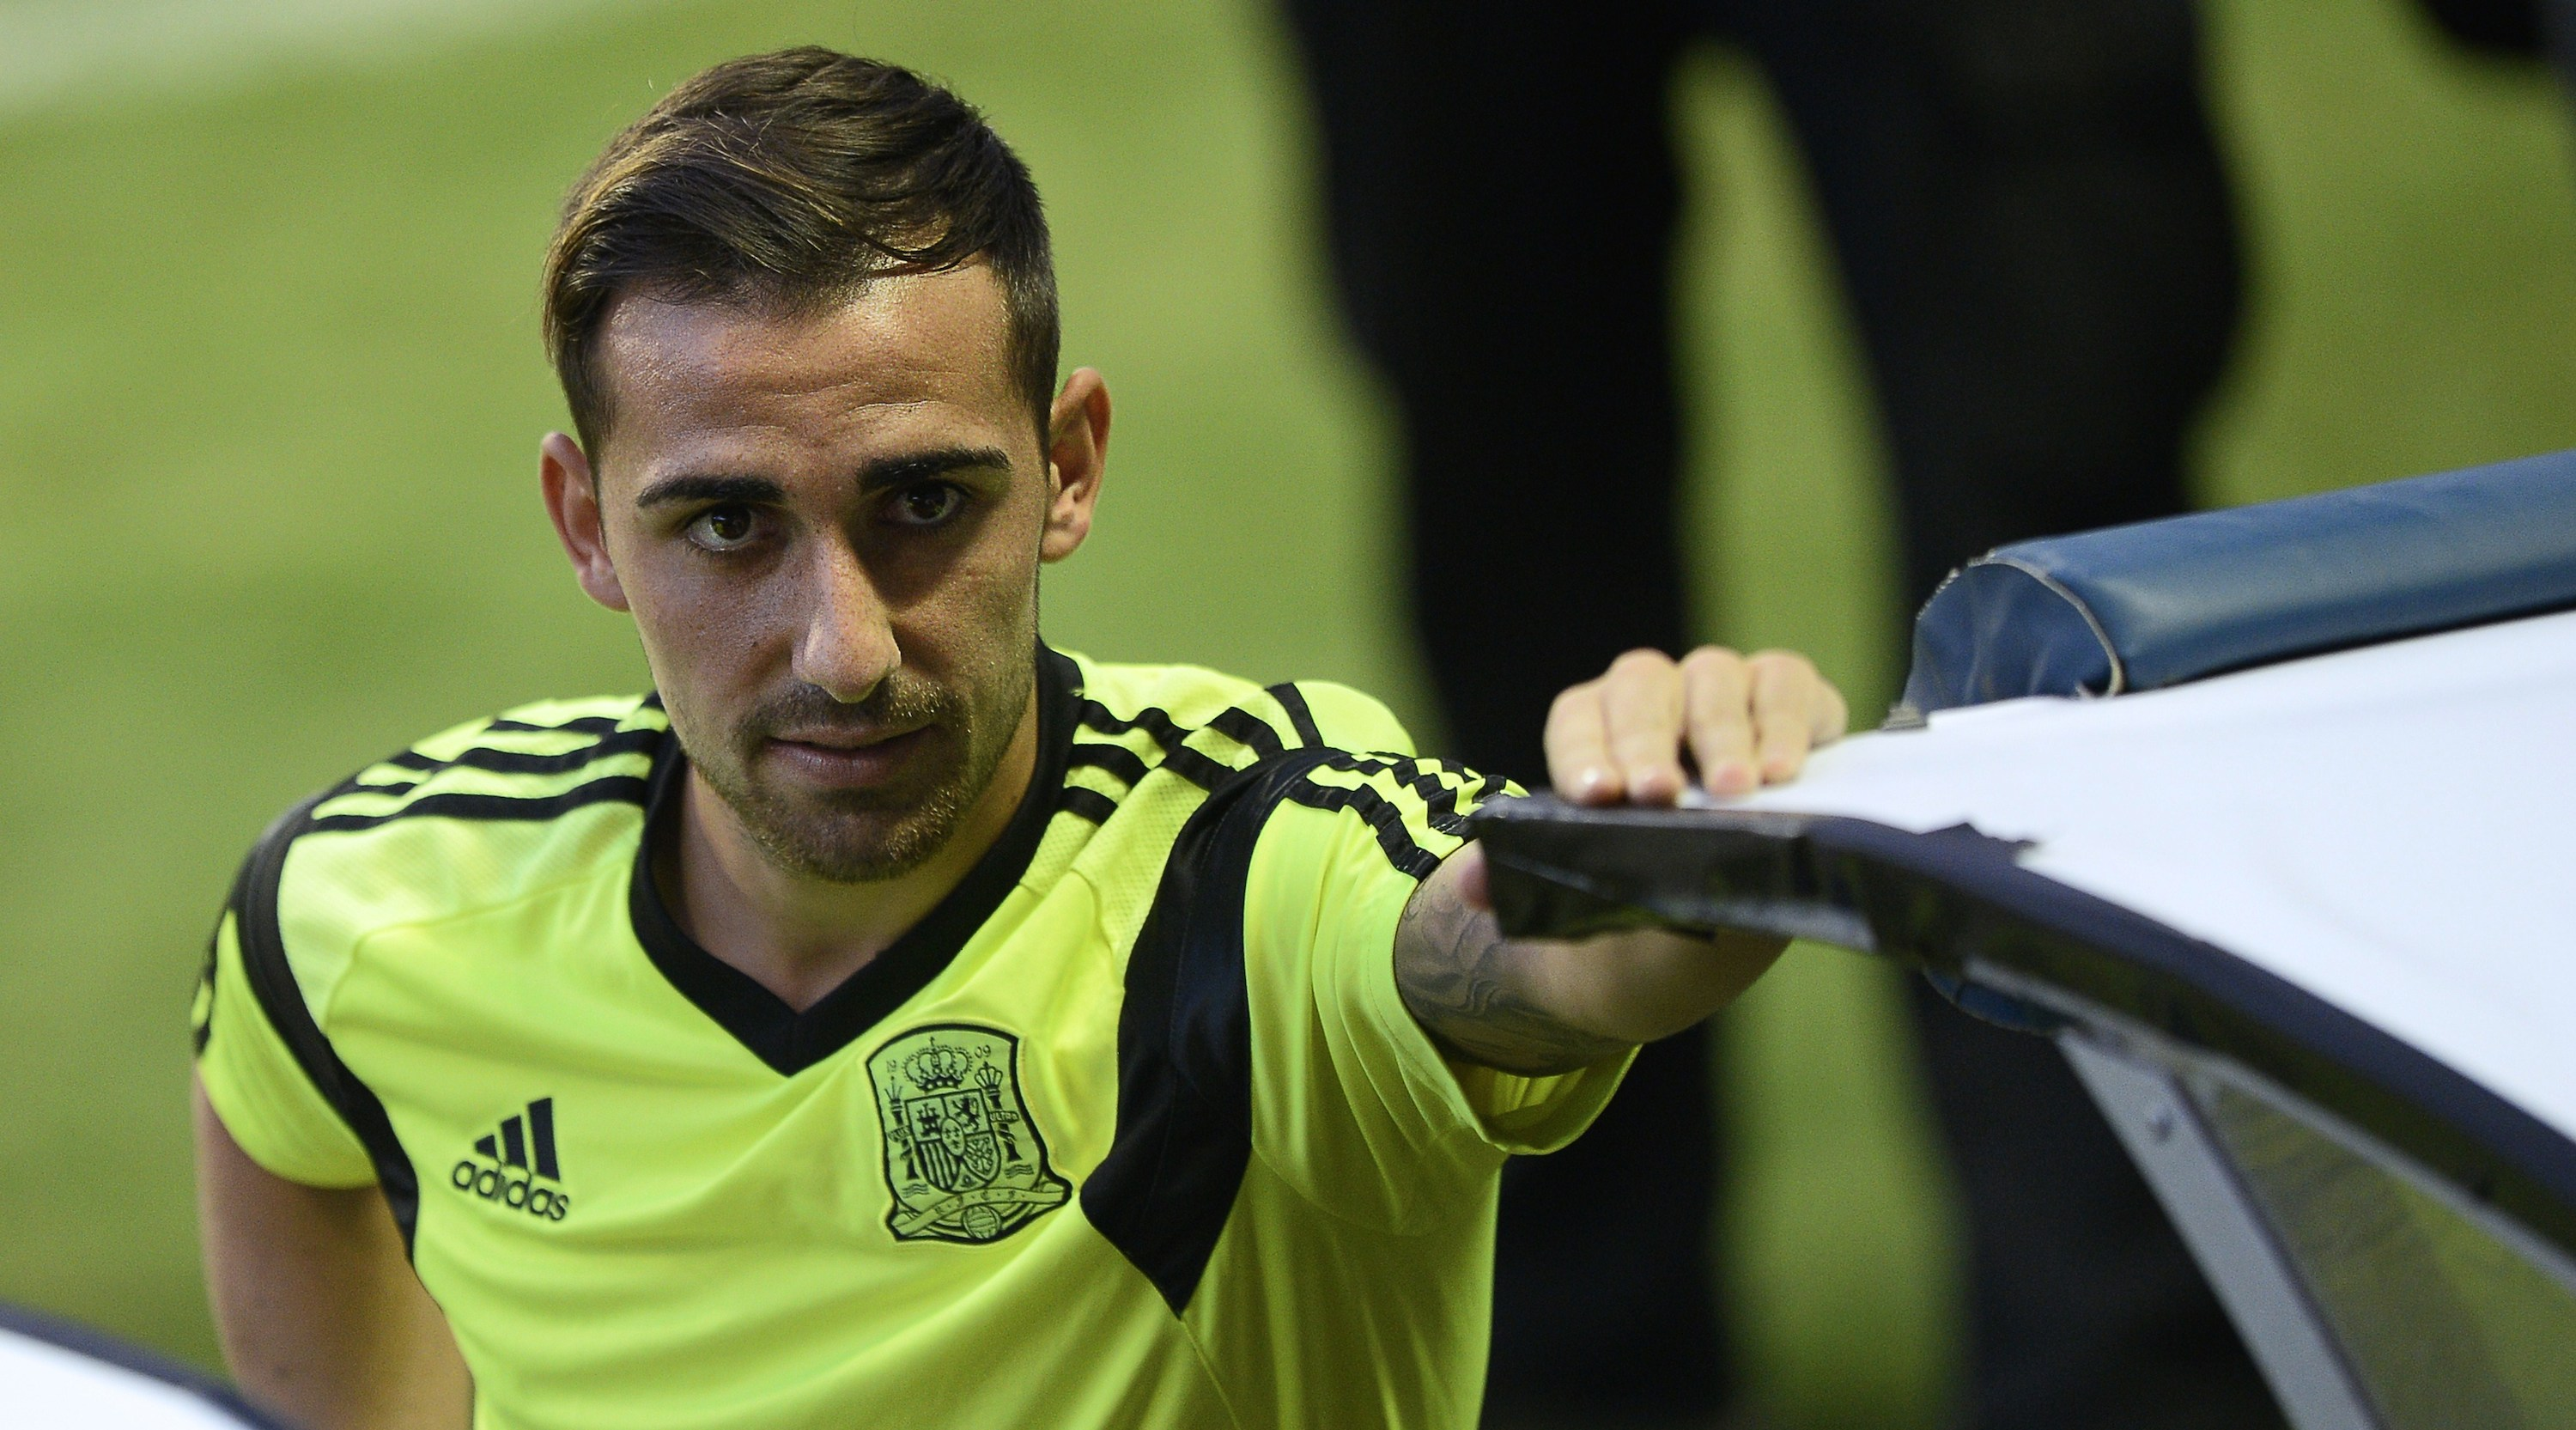 Spain's forward Paco Alcacer takes part in a training session at the Ciudad de Valencia stadium in Valencia on September 7, 2014, on the eve of the UEFA Euro 2016 group D qualifying football match Spain vs Macedonia. AFP PHOTO / JOSE JORDAN (Photo credit should read JOSE JORDAN/AFP/Getty Images)